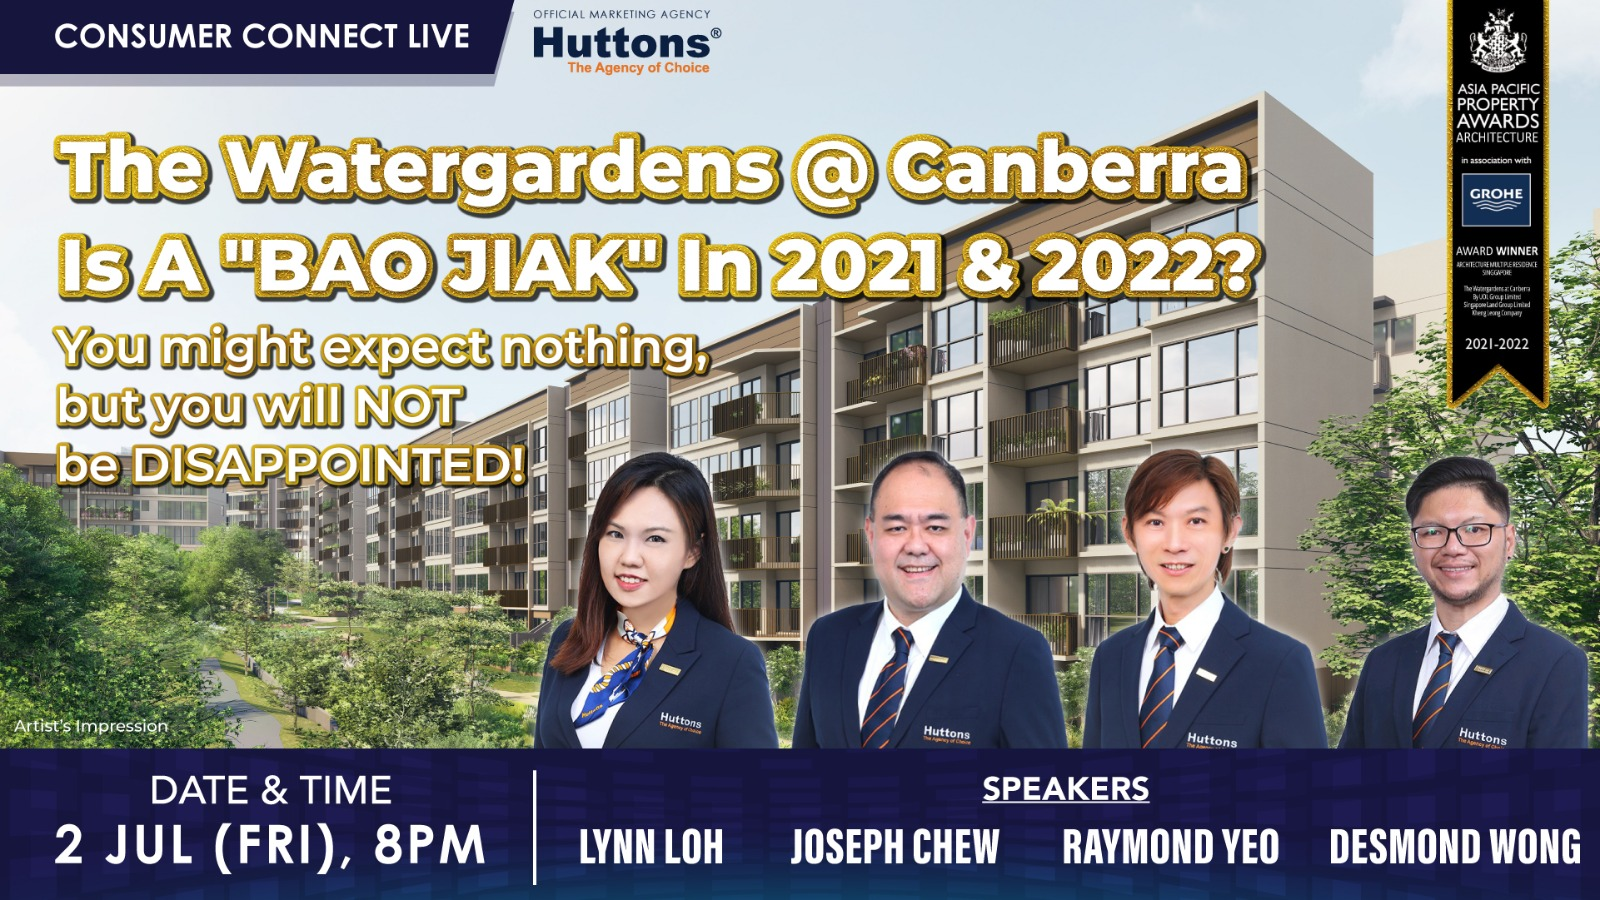 Huttons Consumer Connect - The Watergardens @ Canberra Is A Bao Jiak in 2021 & 2022